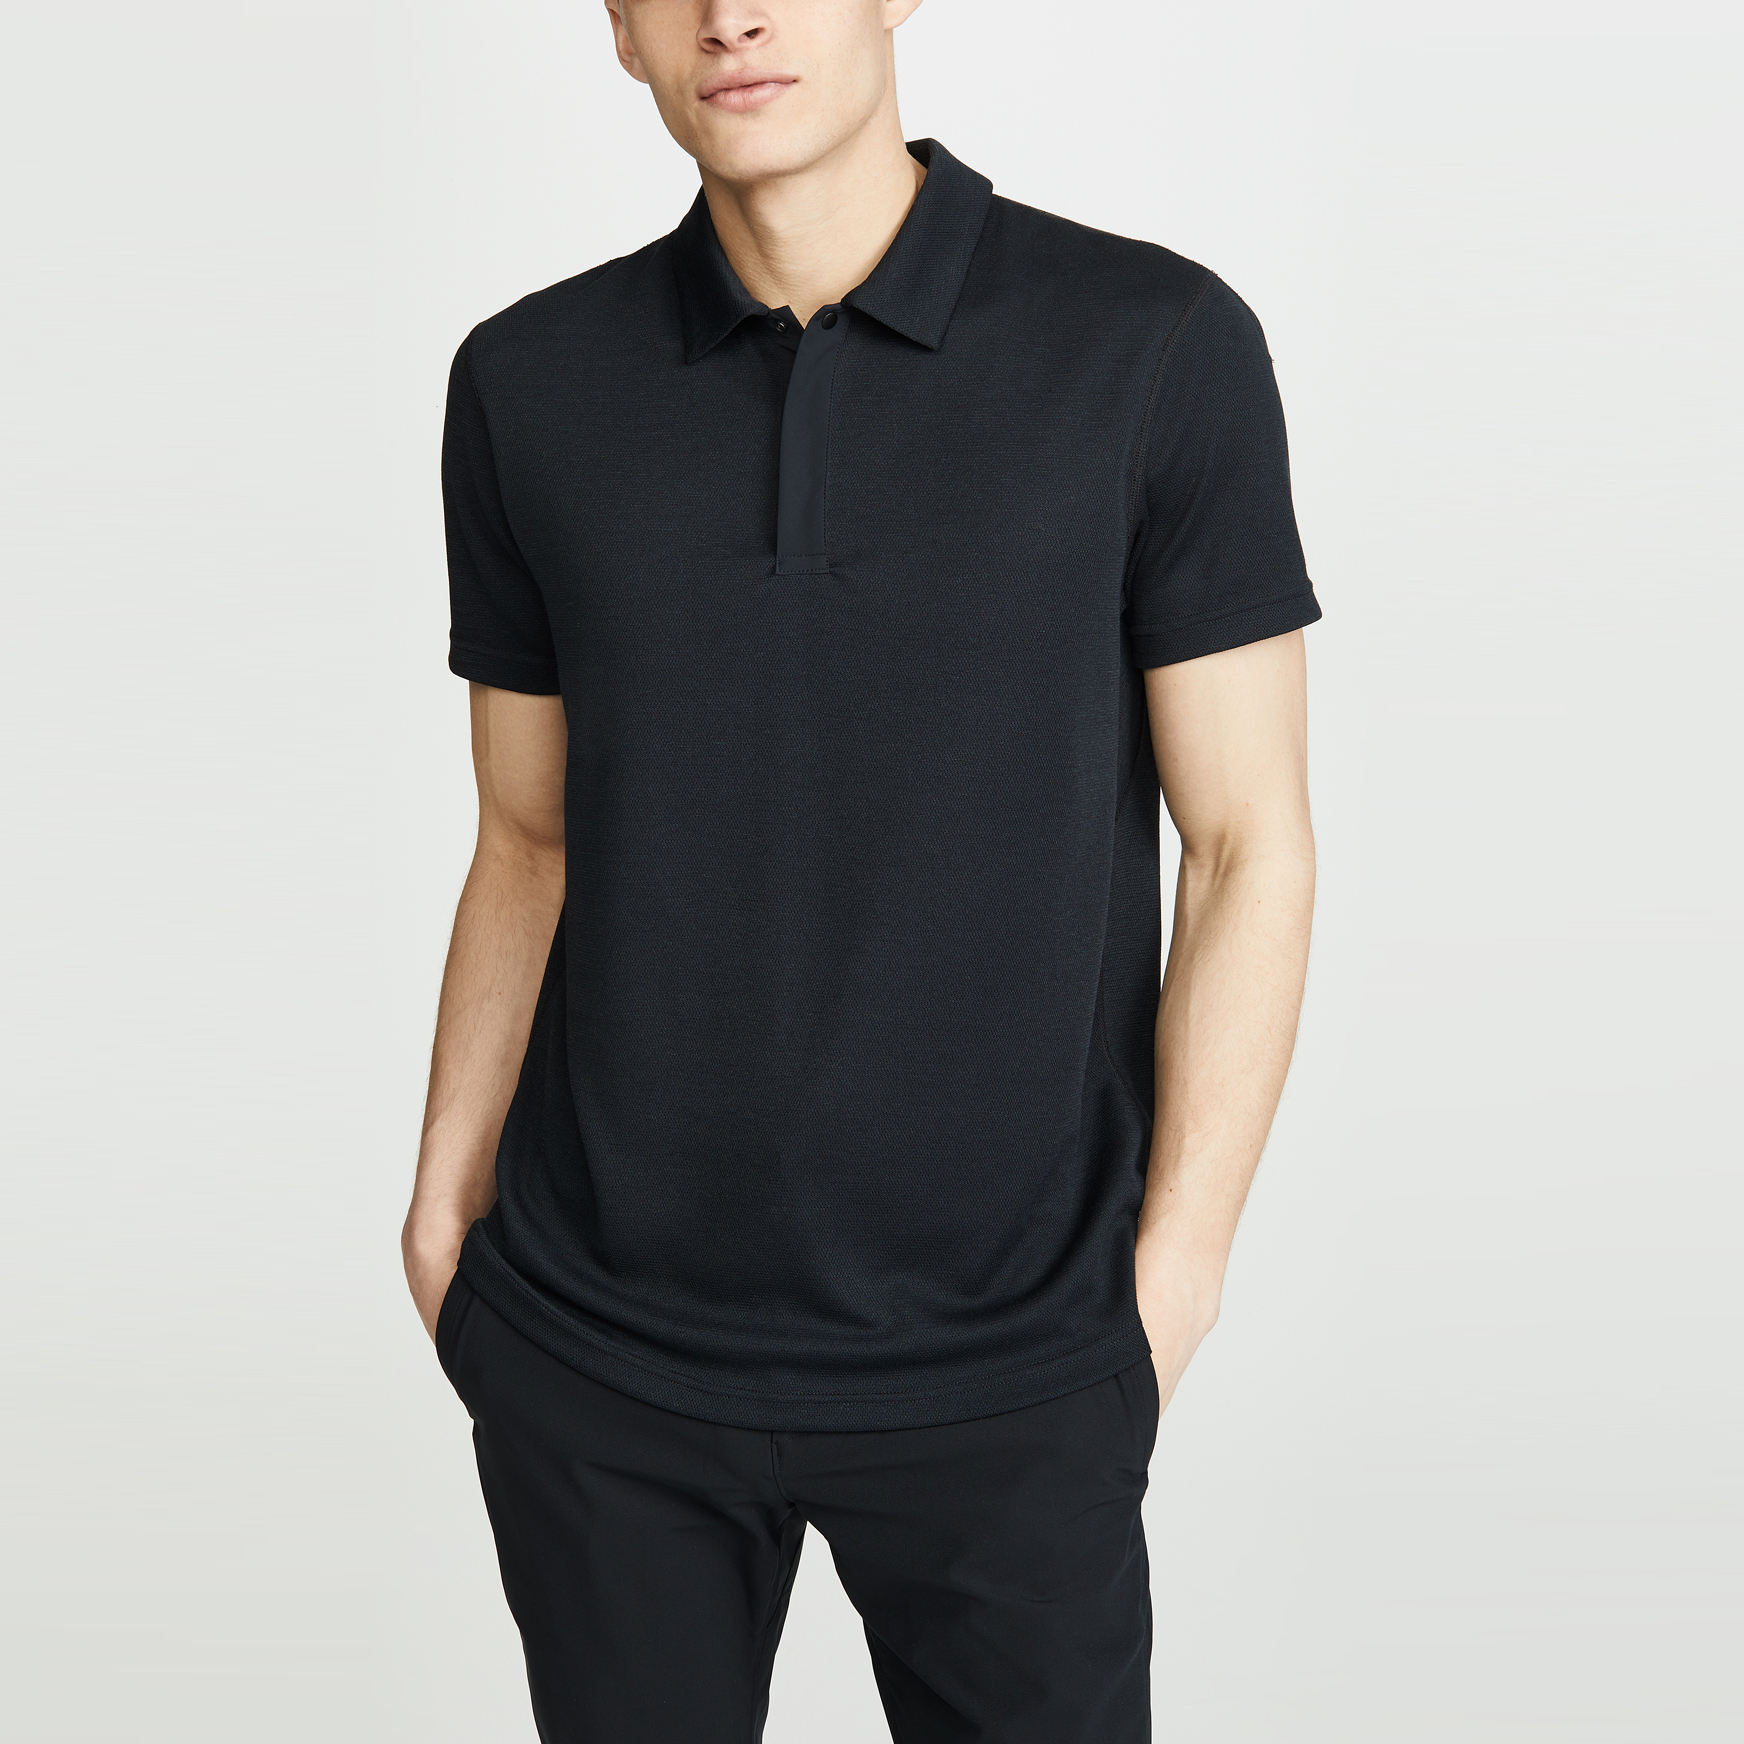 Nach hiqh qualität herren polo shirt 100% baumwolle blank atmungs slim fit polo t-shirt